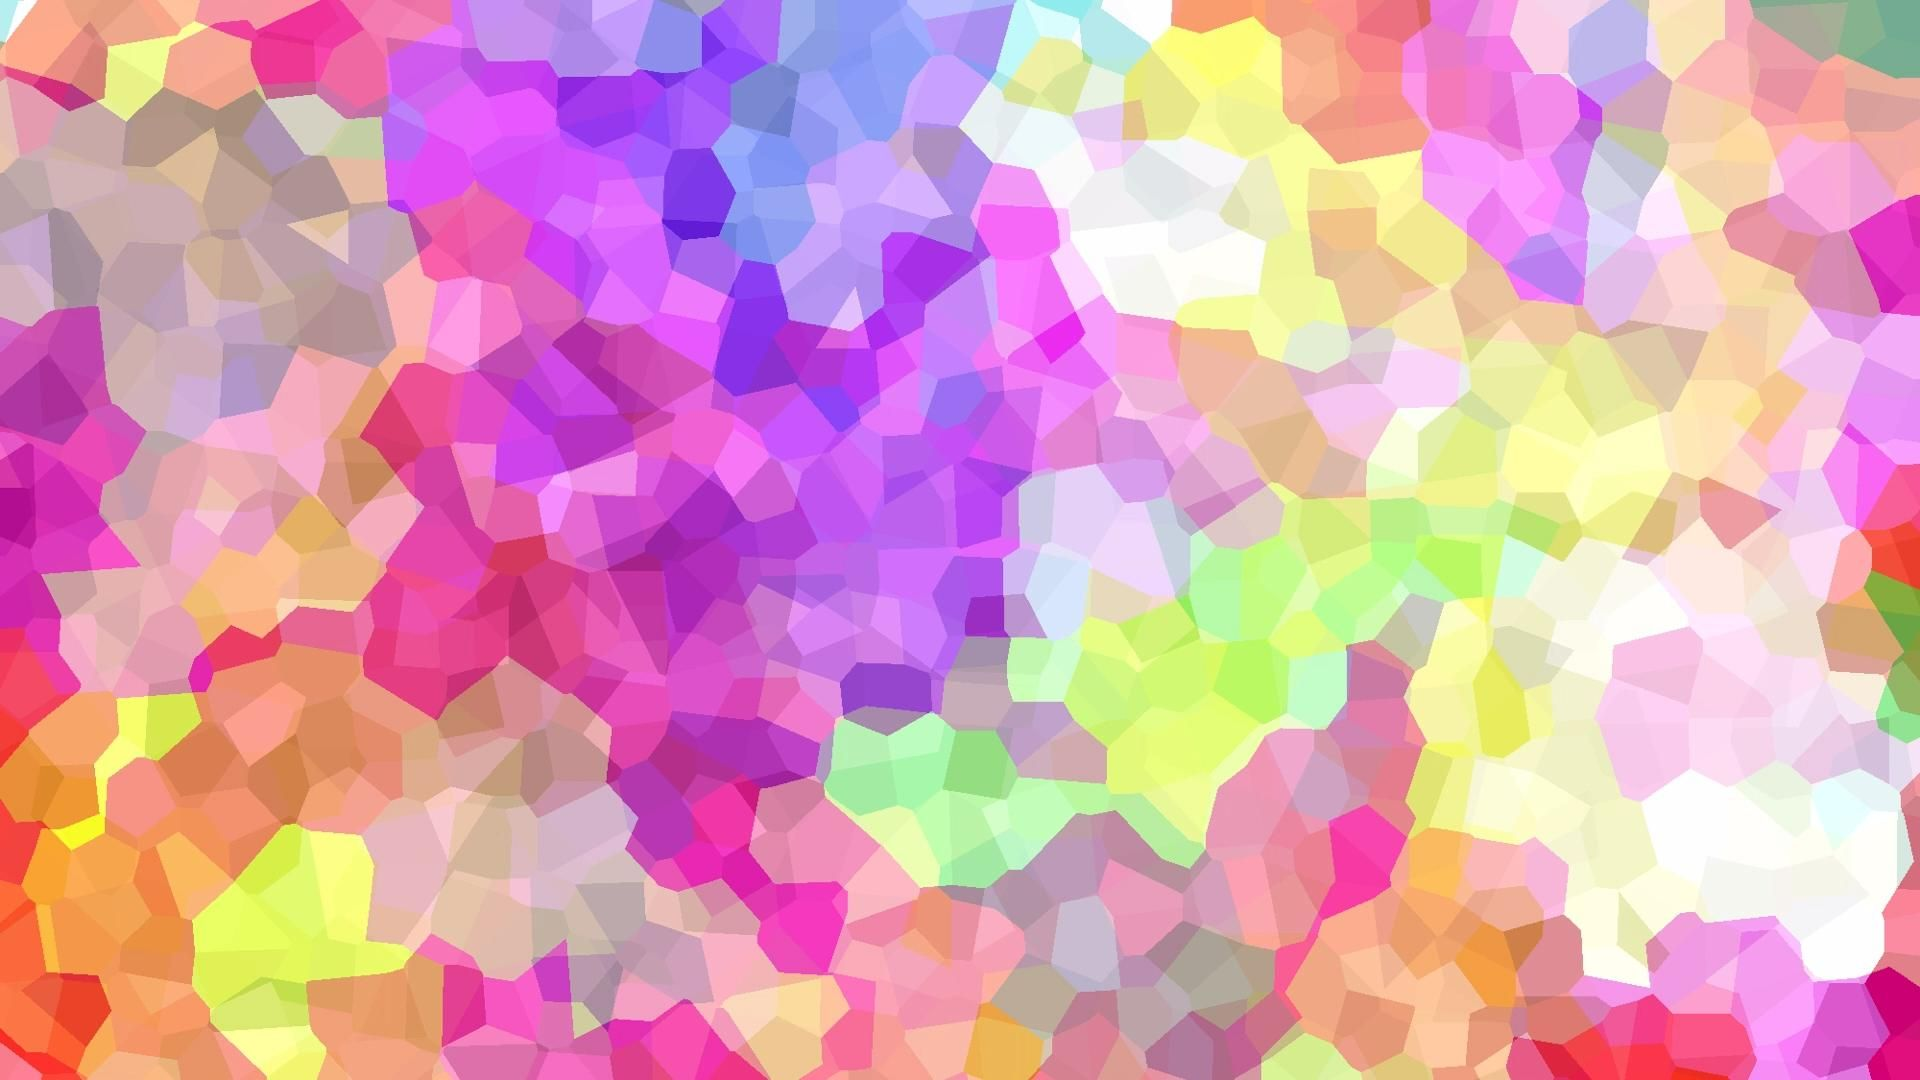 Free Loop Background Video - Colourful Geometric Shapes